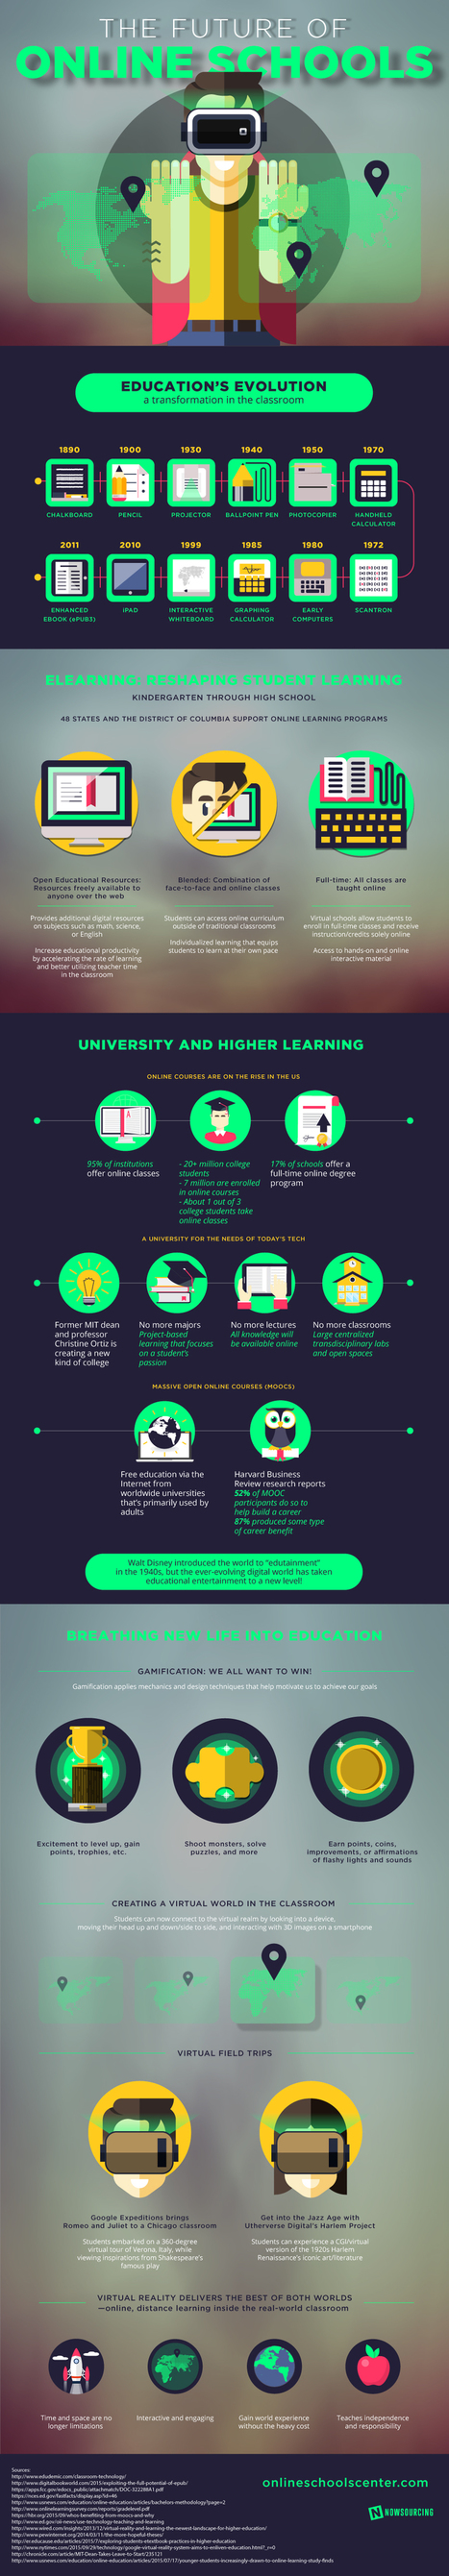 The Future of Online Schools Infographic  | Managing Technology and Talent for Learning & Innovation | Scoop.it